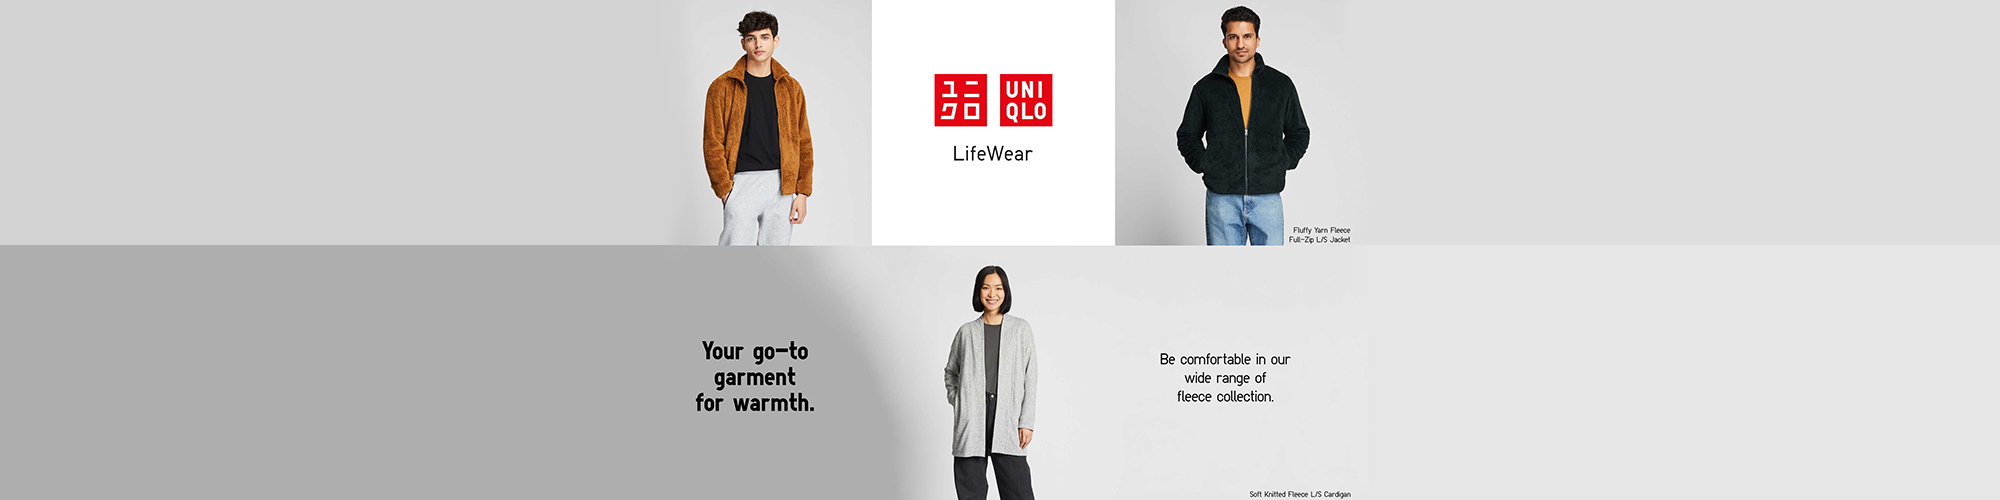 km_website_slider_uniqlo_100919